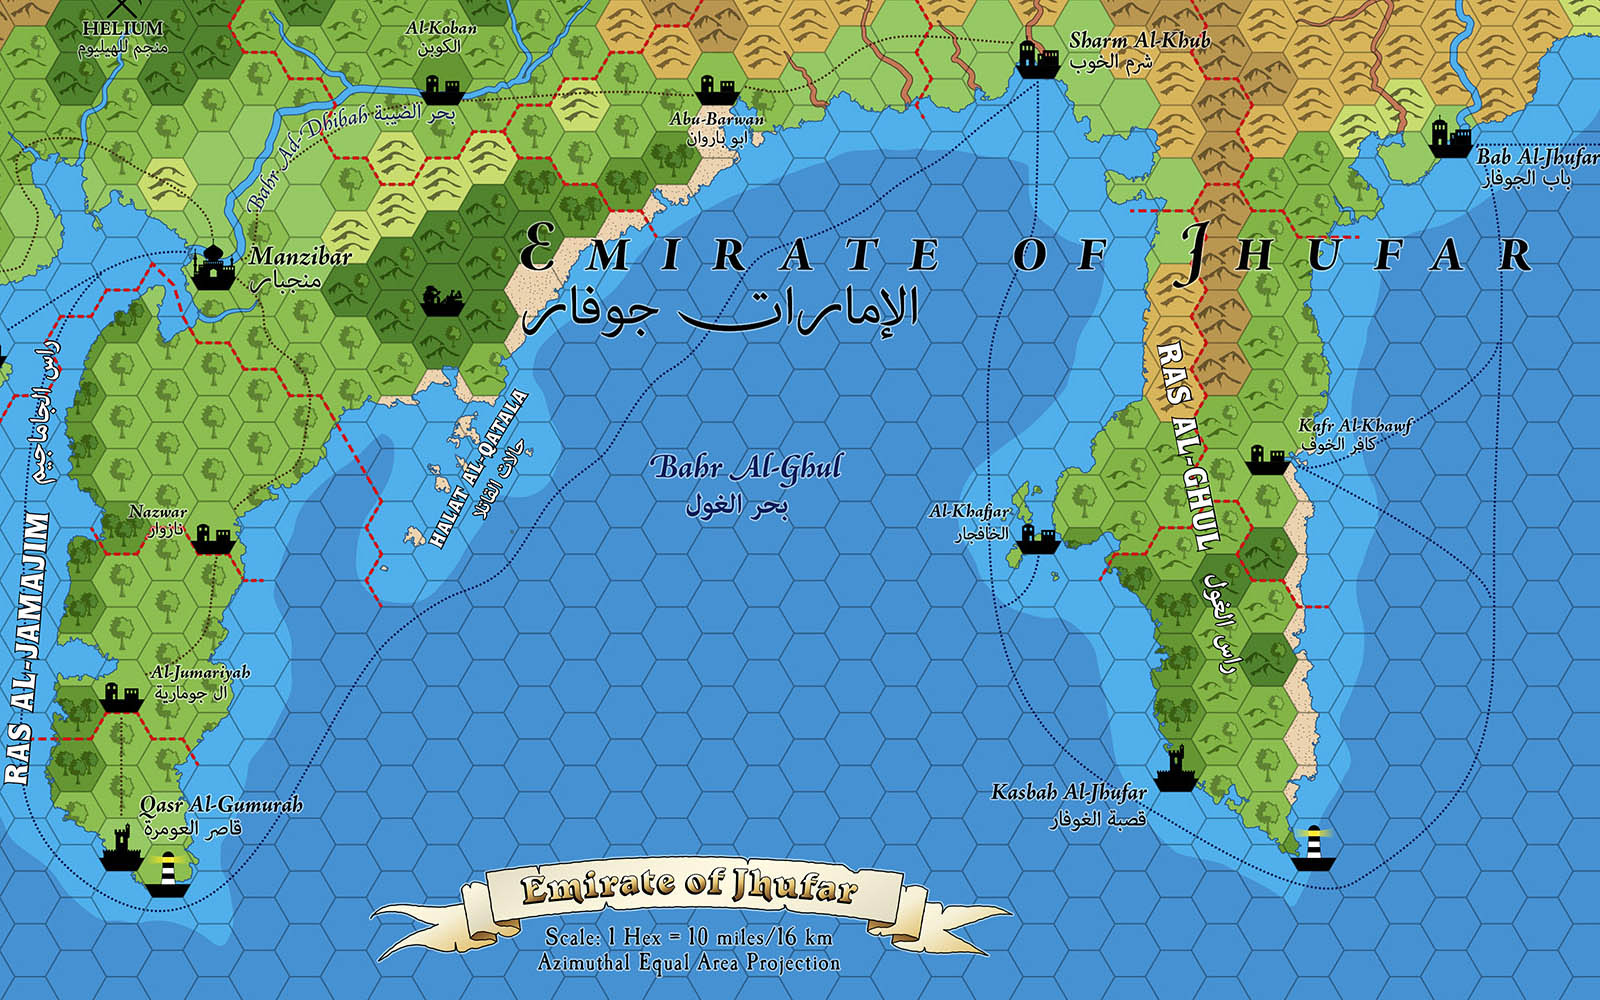 Al-Barami and Jhufar Hex Maps (Patreon)